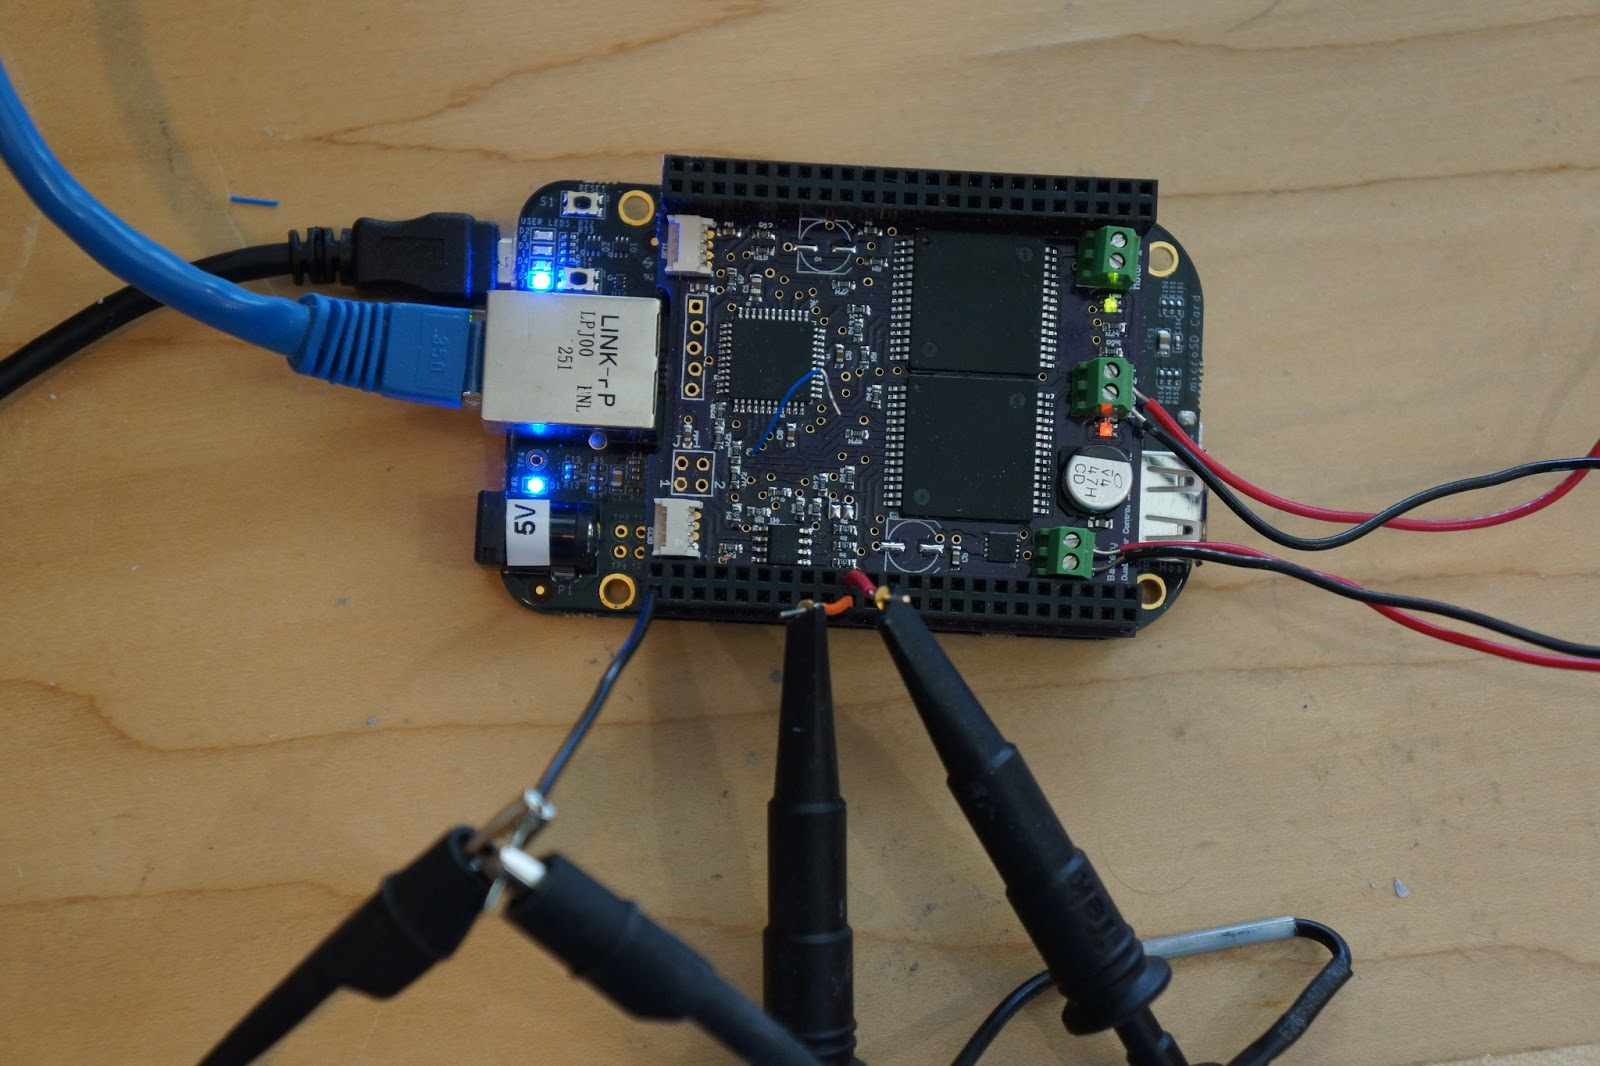 Robots and Electrons: Bringing up a new cape for the Beaglebone